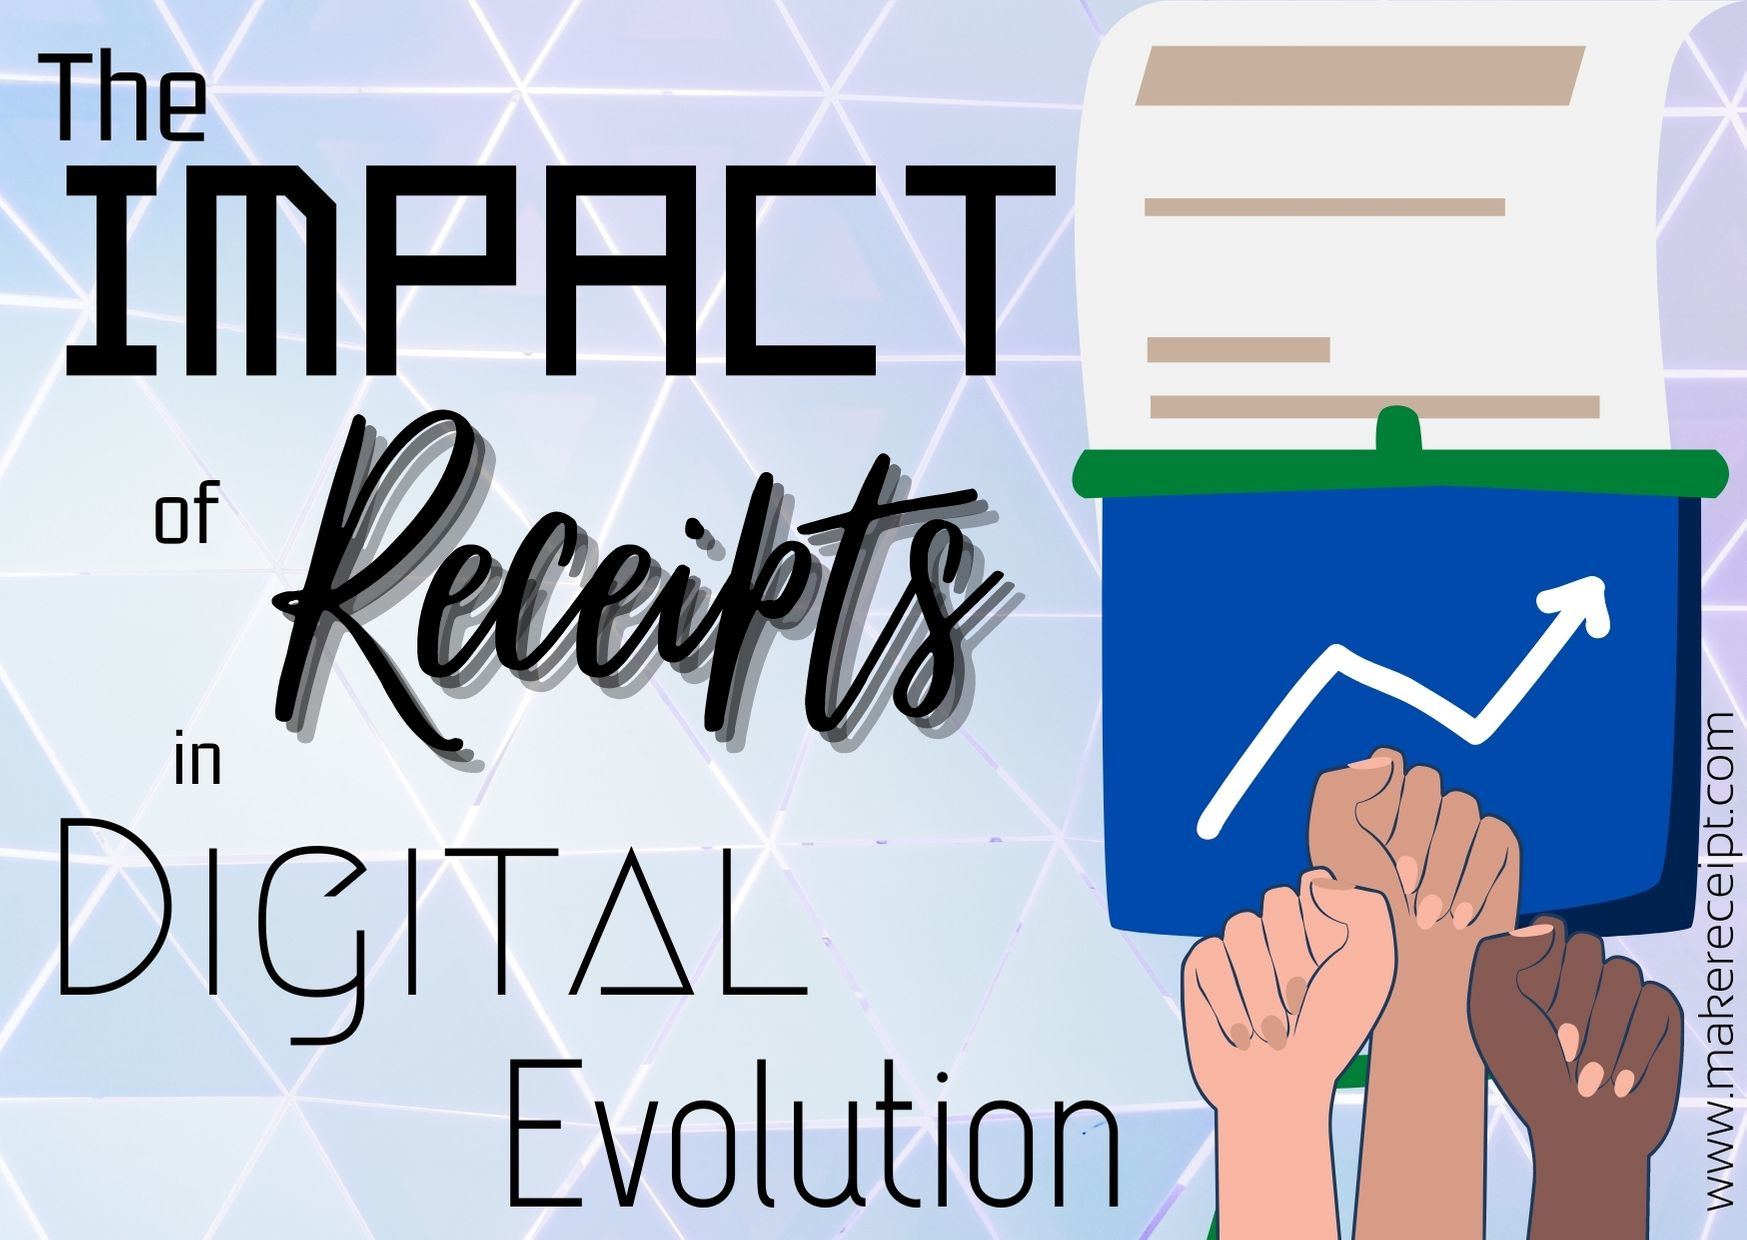 THE IMPACT OF RECEIPTS IN DIGITAL EVOLUTION